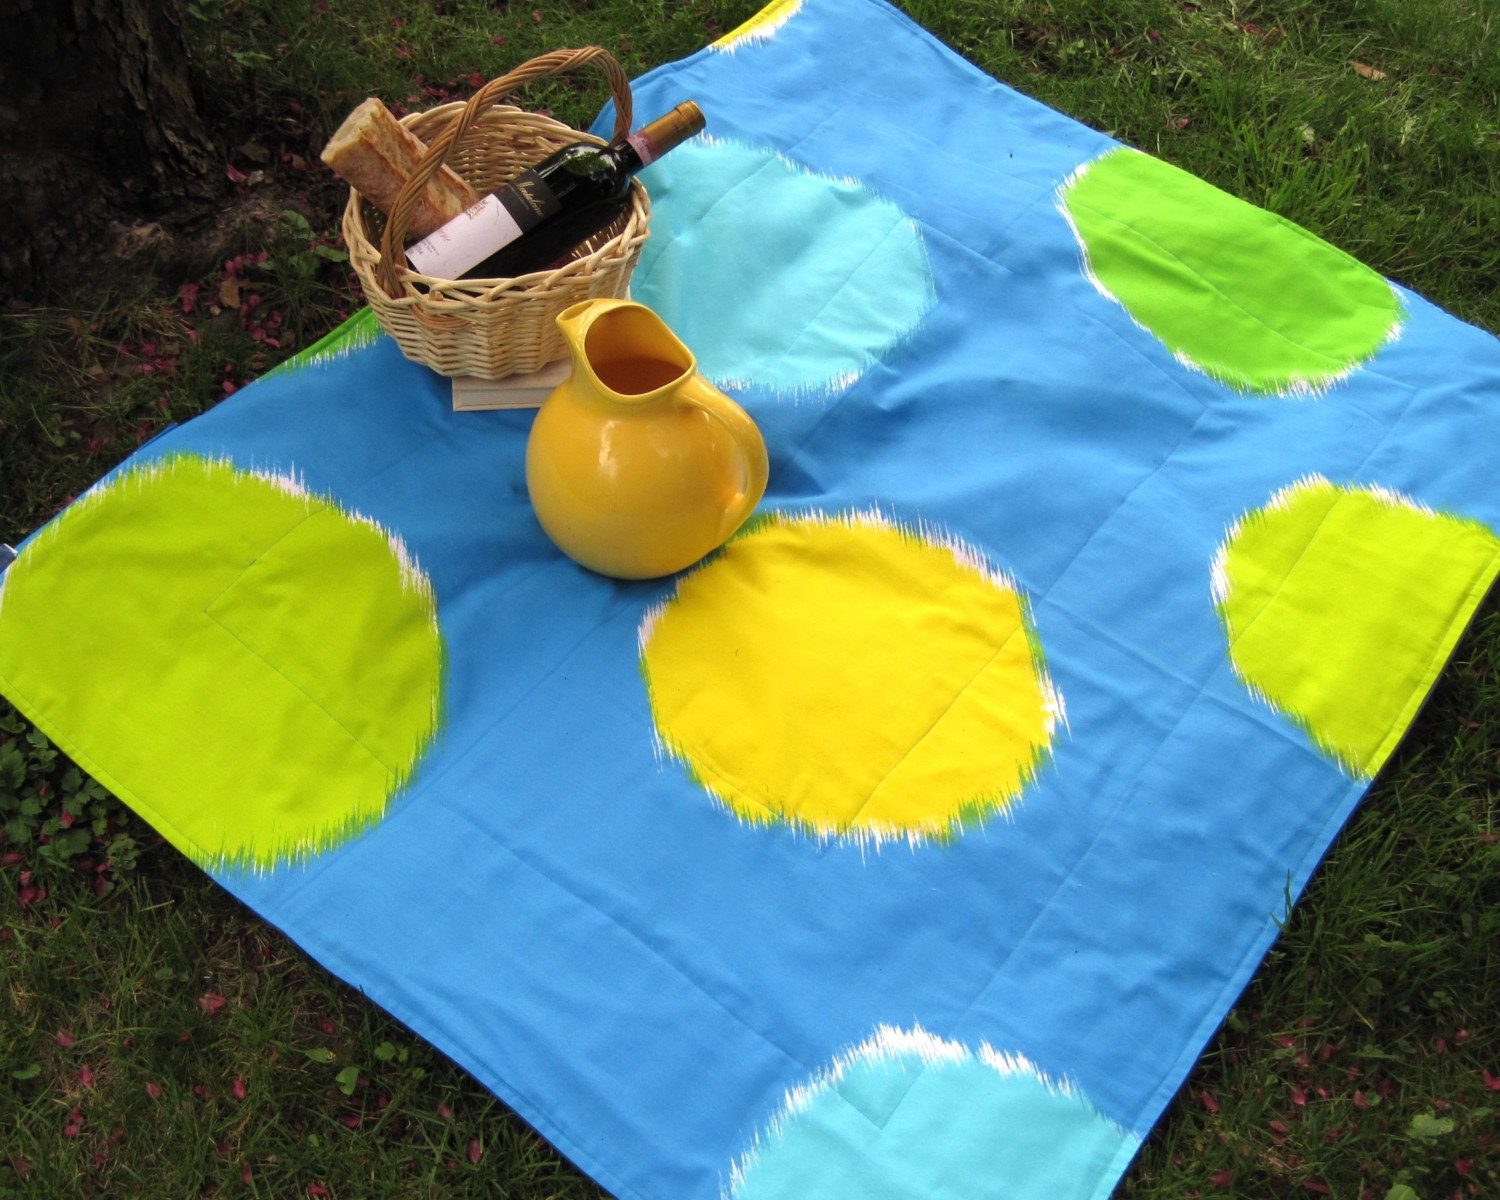 mod Marimekko picnic blanket / turquoise yellow pops of color (only one)